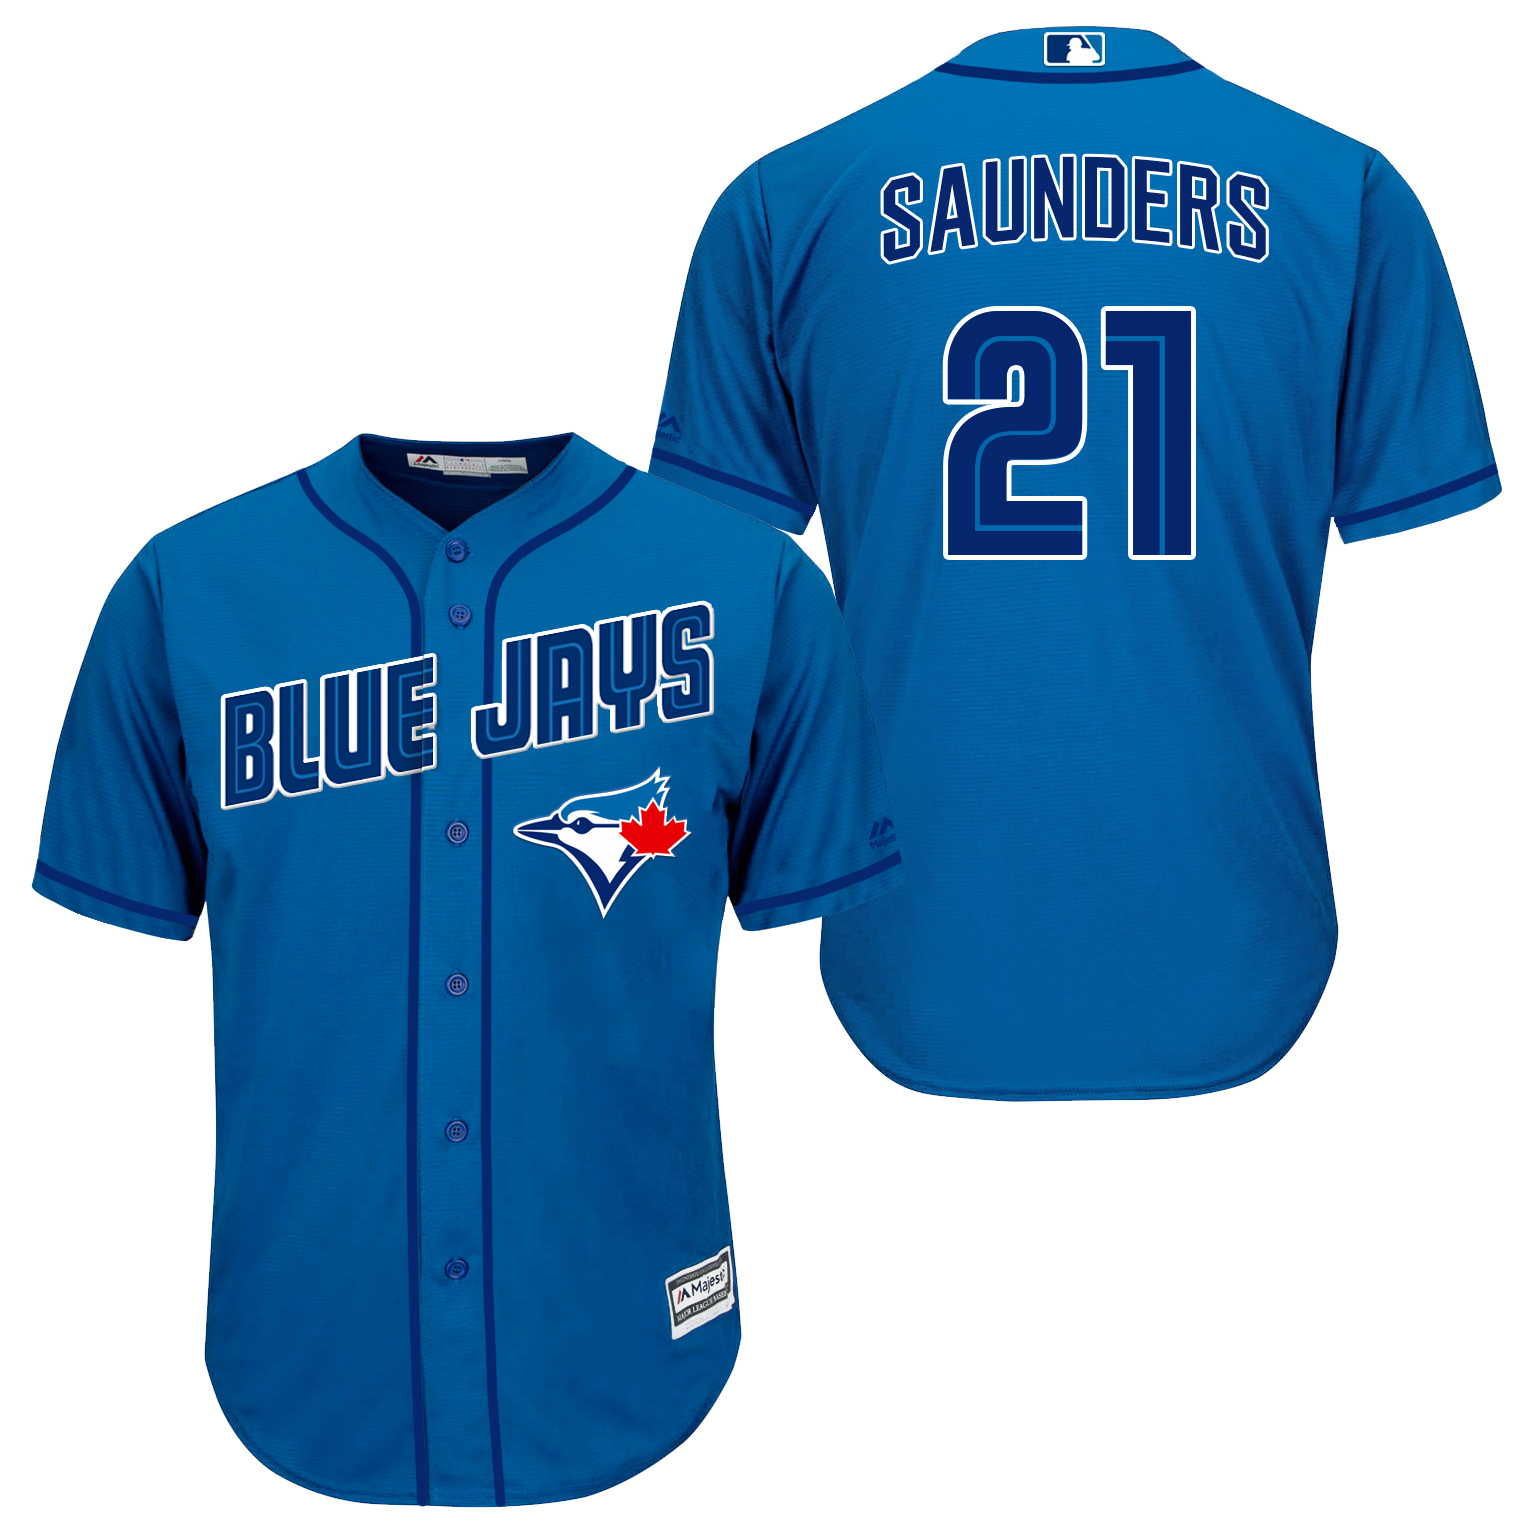 Blue Jays 21 Michael Saunders Light Blue New Cool Base Jersey